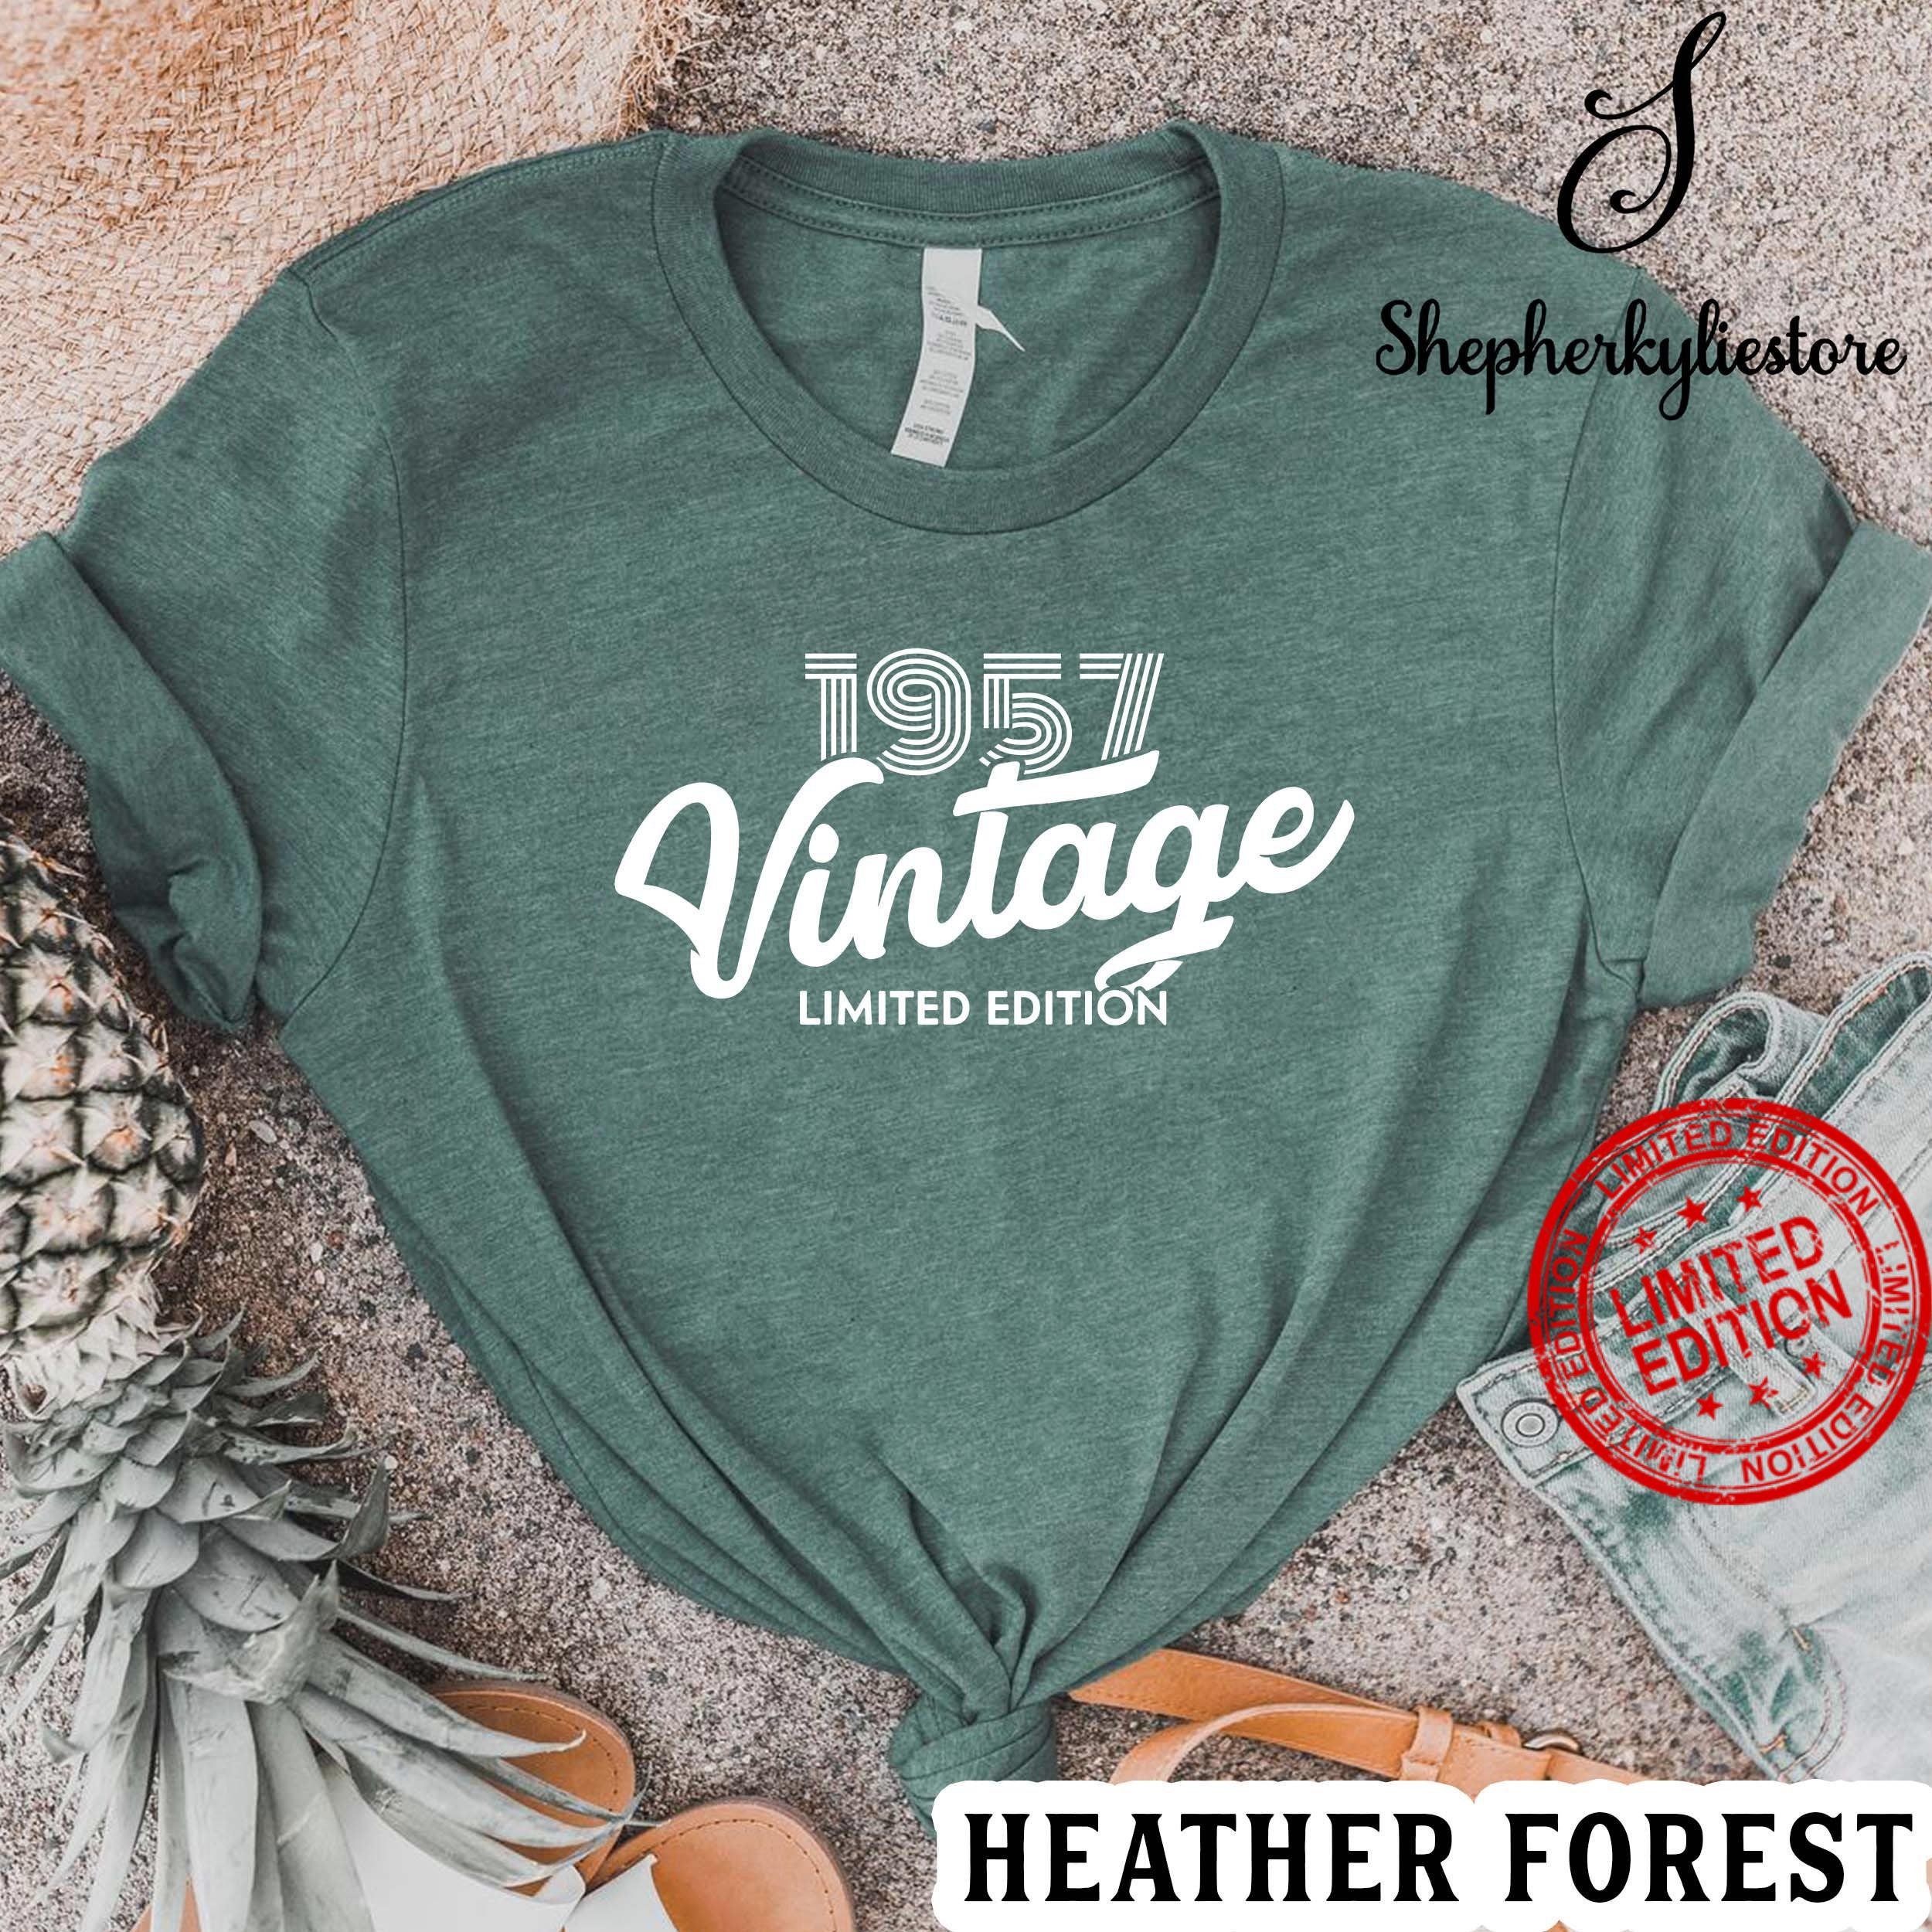 Vintage 1957 Limited Edition Shirt